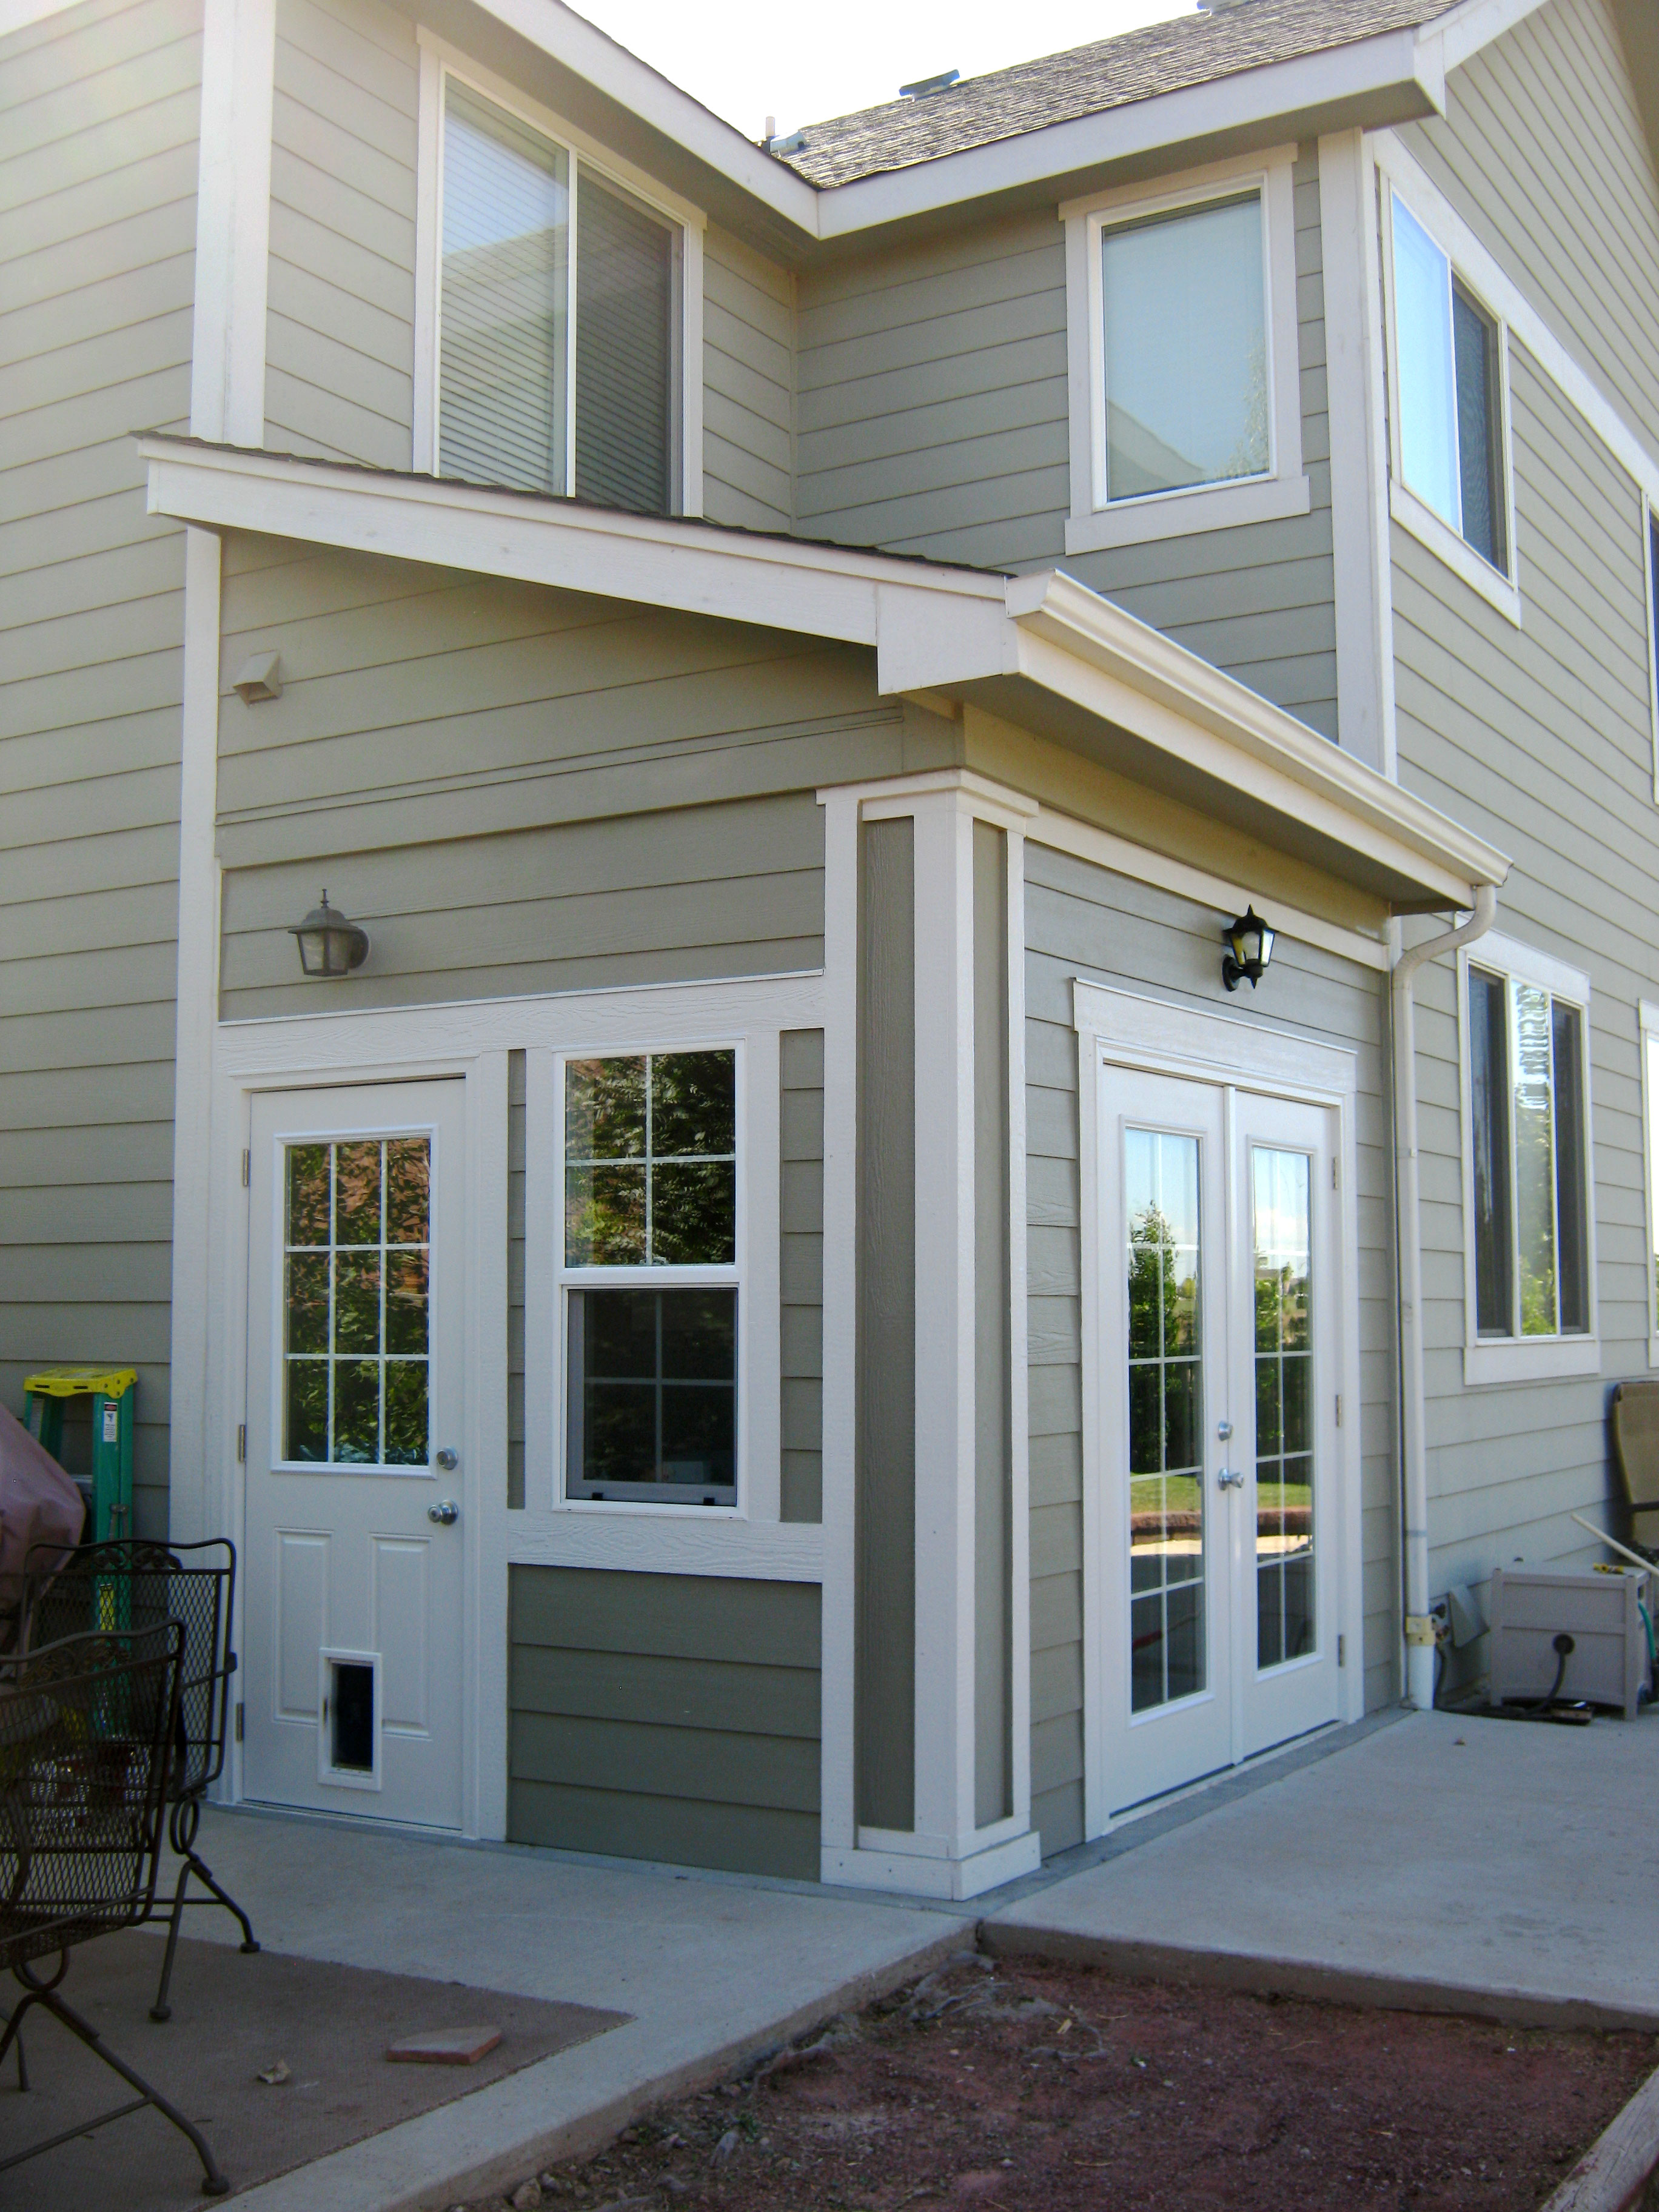 Exterior finishes quality renovations home services for Exterior finishes for homes